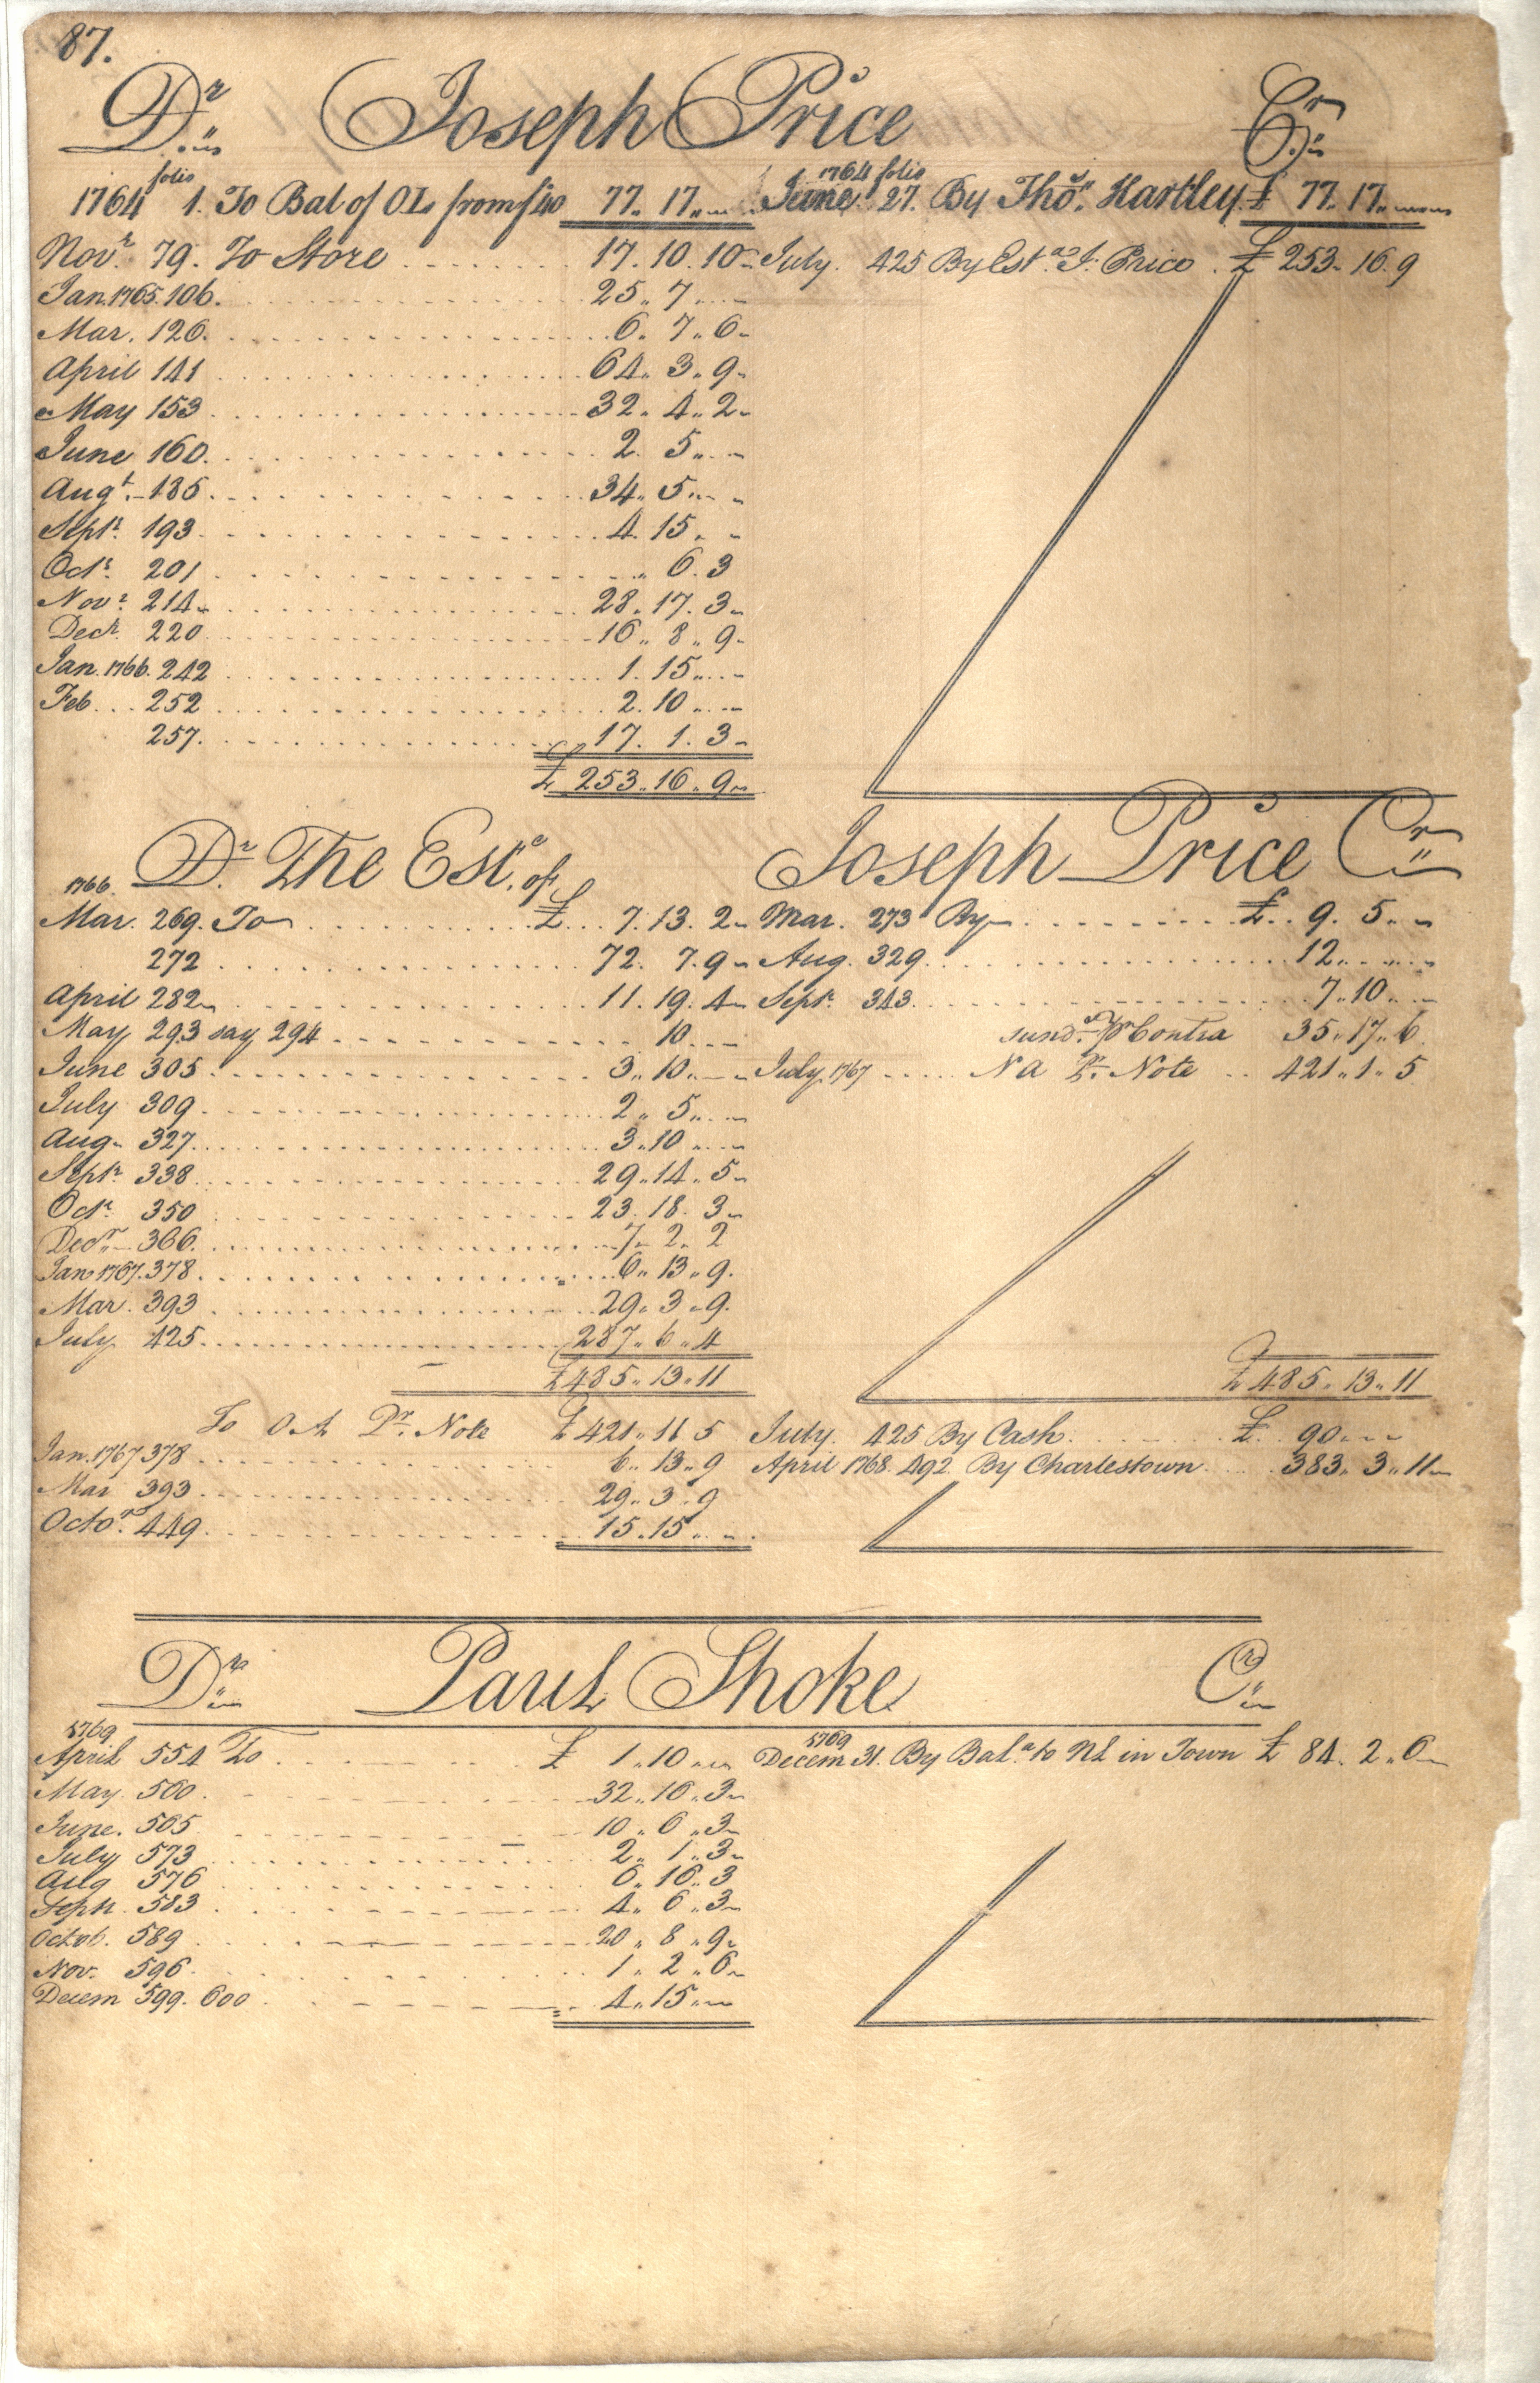 Plowden Weston's Business Ledger, page 87